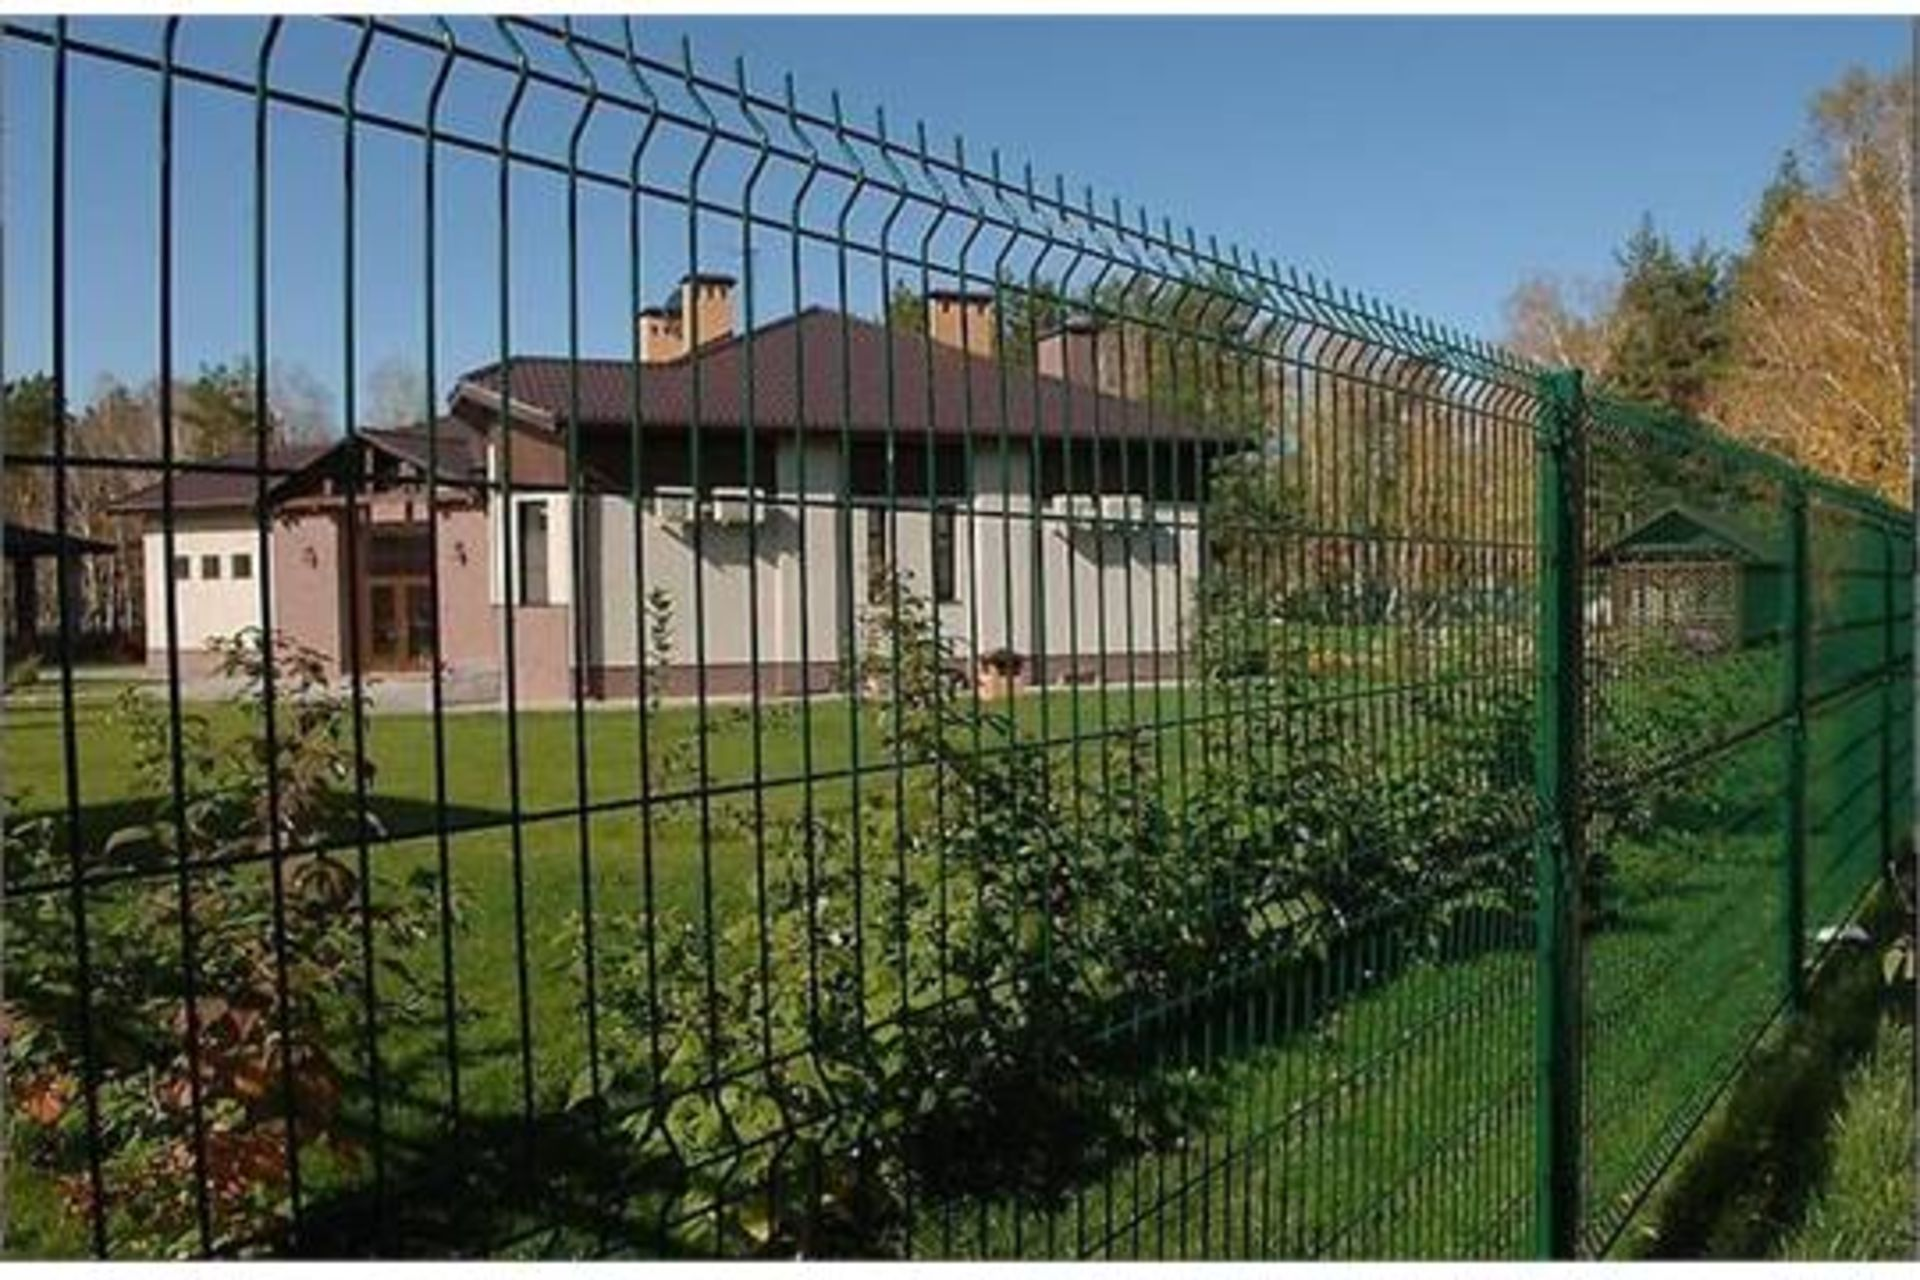 Lot 7 - 100 x Meters in 2.1h x 2.5w sections of New V BEAM Heavy Duty Security Fencing